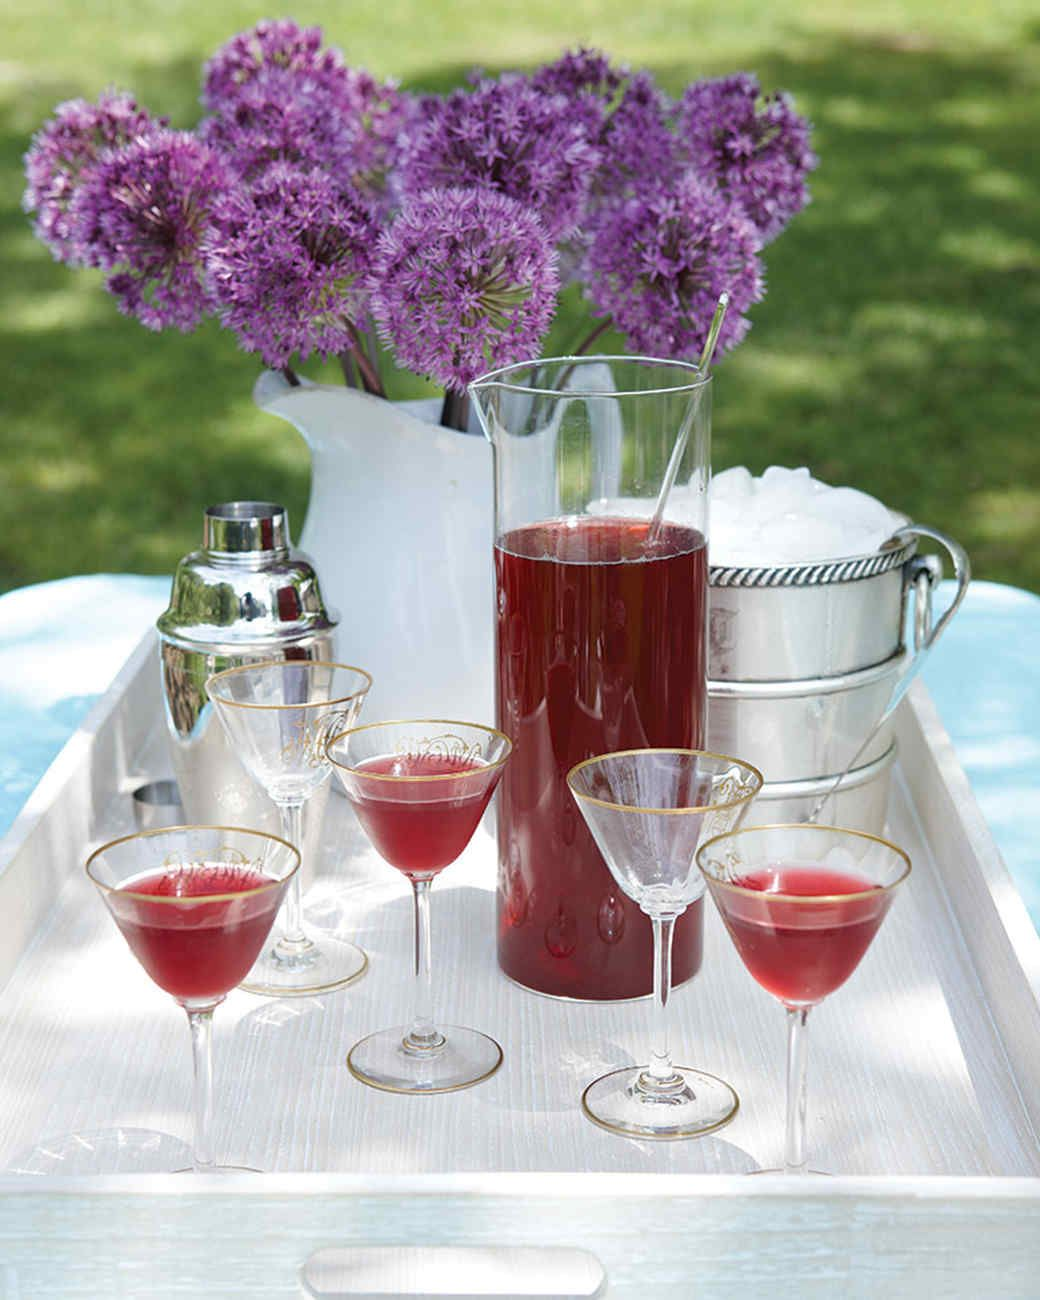 Hibiscus iced tea recipe brew store hibiscus tea and tarts hibiscus iced tea izmirmasajfo Choice Image